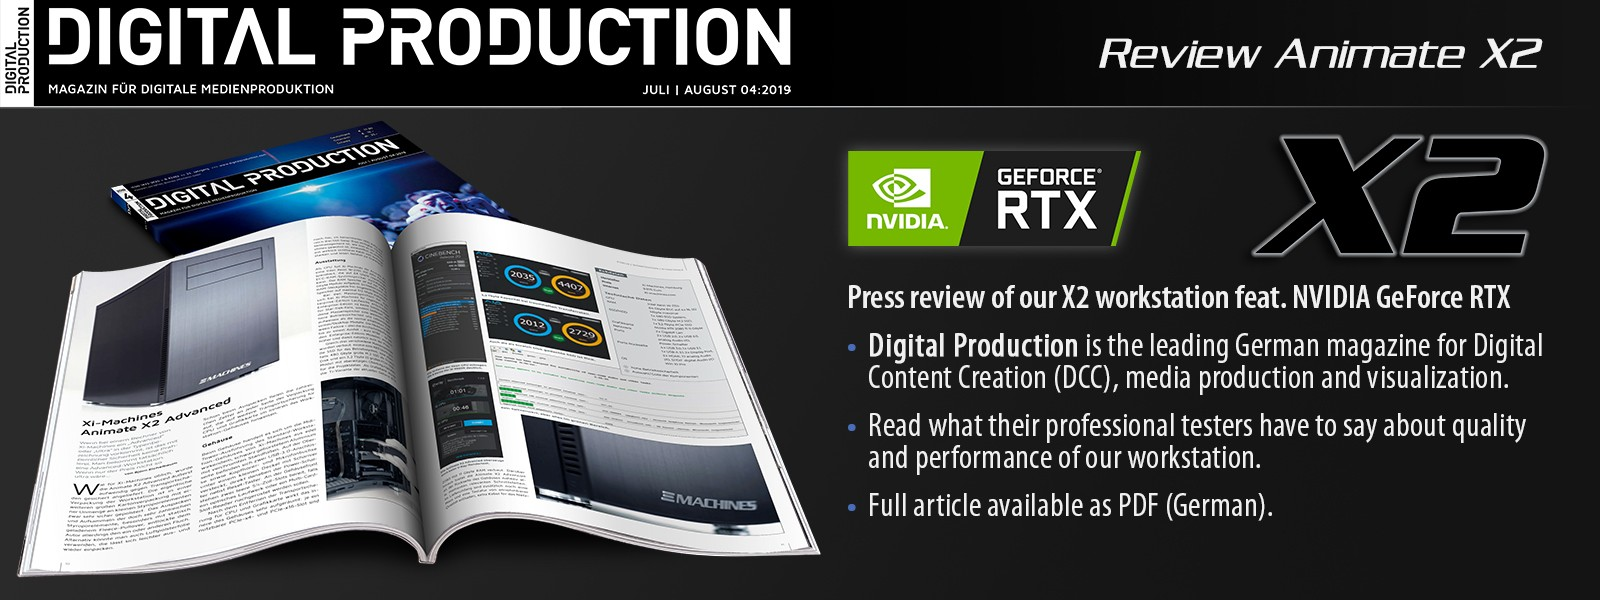 X2 - now featuring NVIDIA GeForce RTX